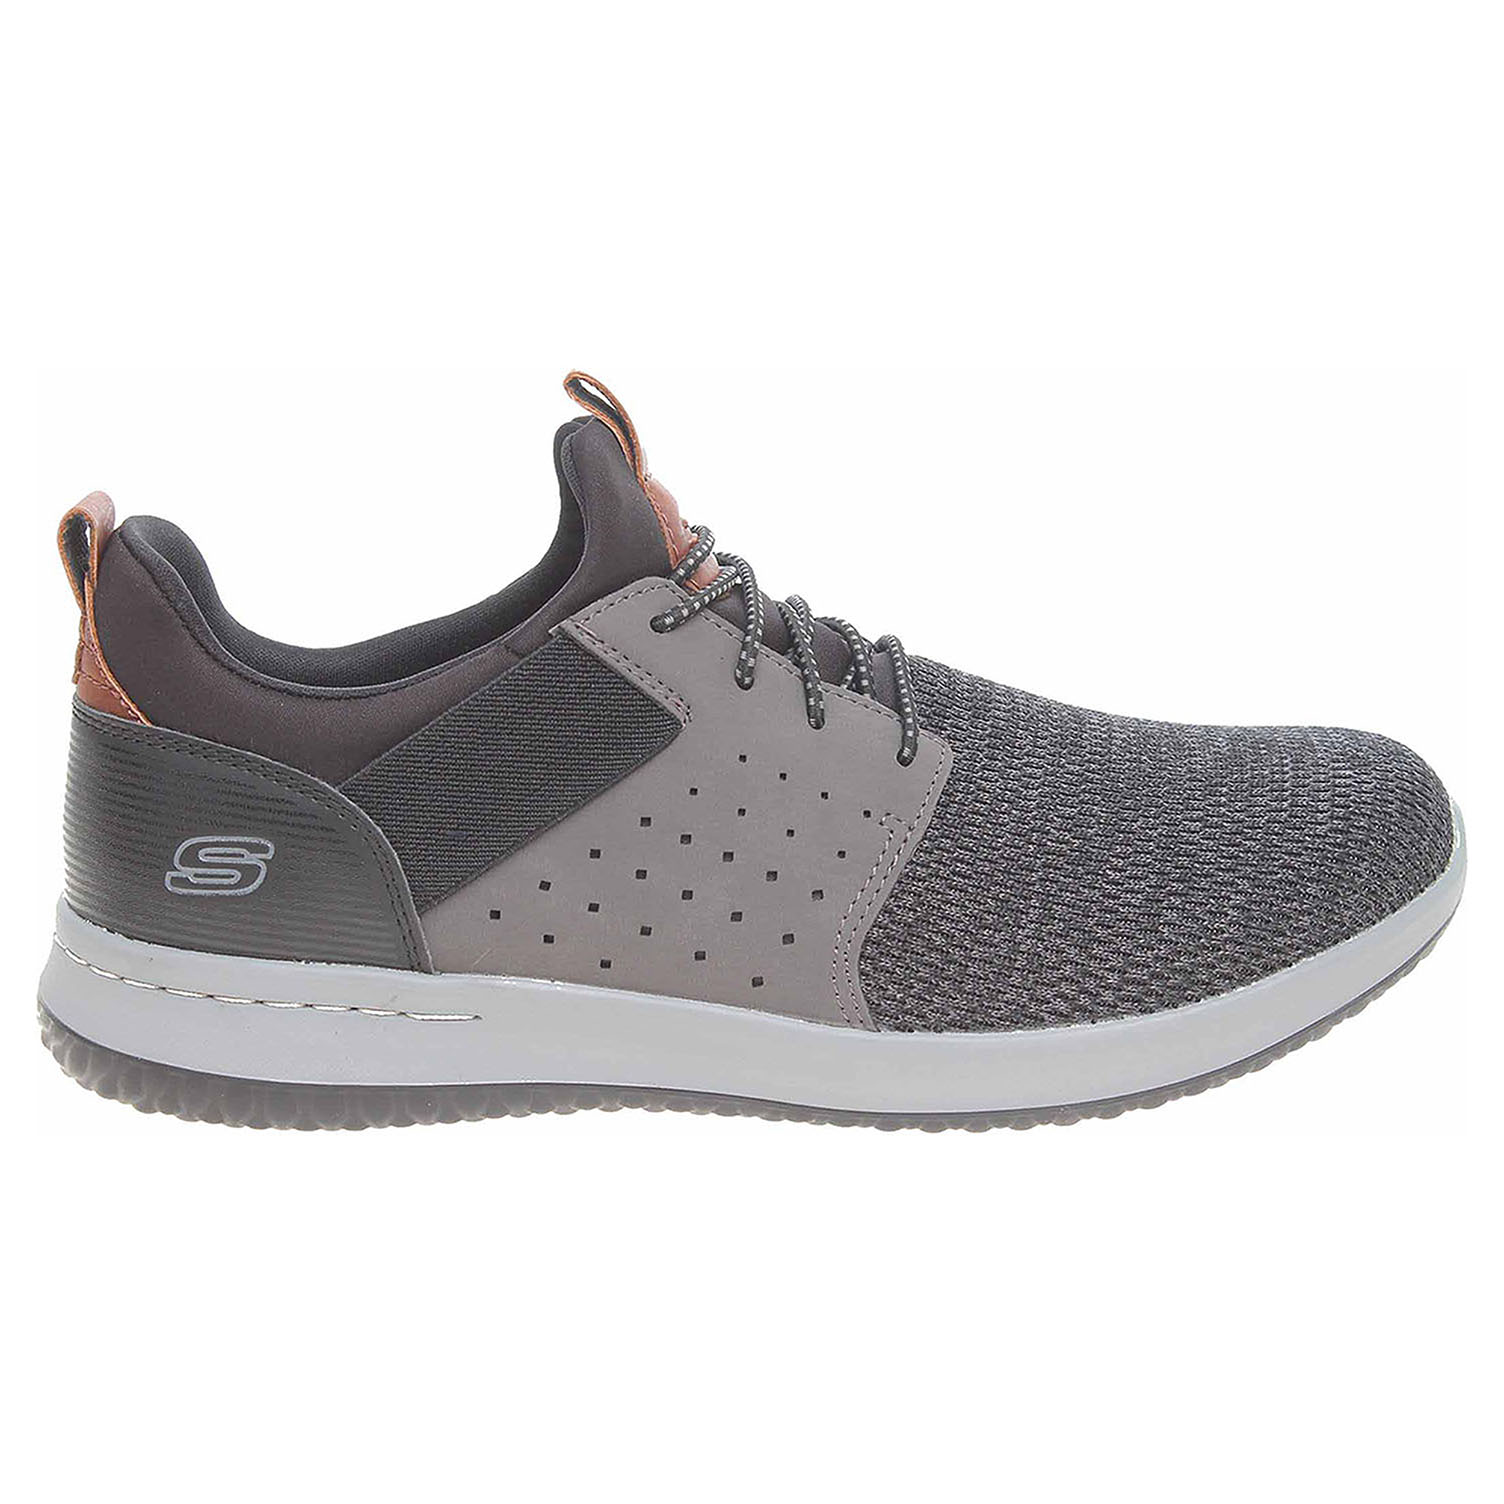 detail Skechers Delson - Camben black-gray